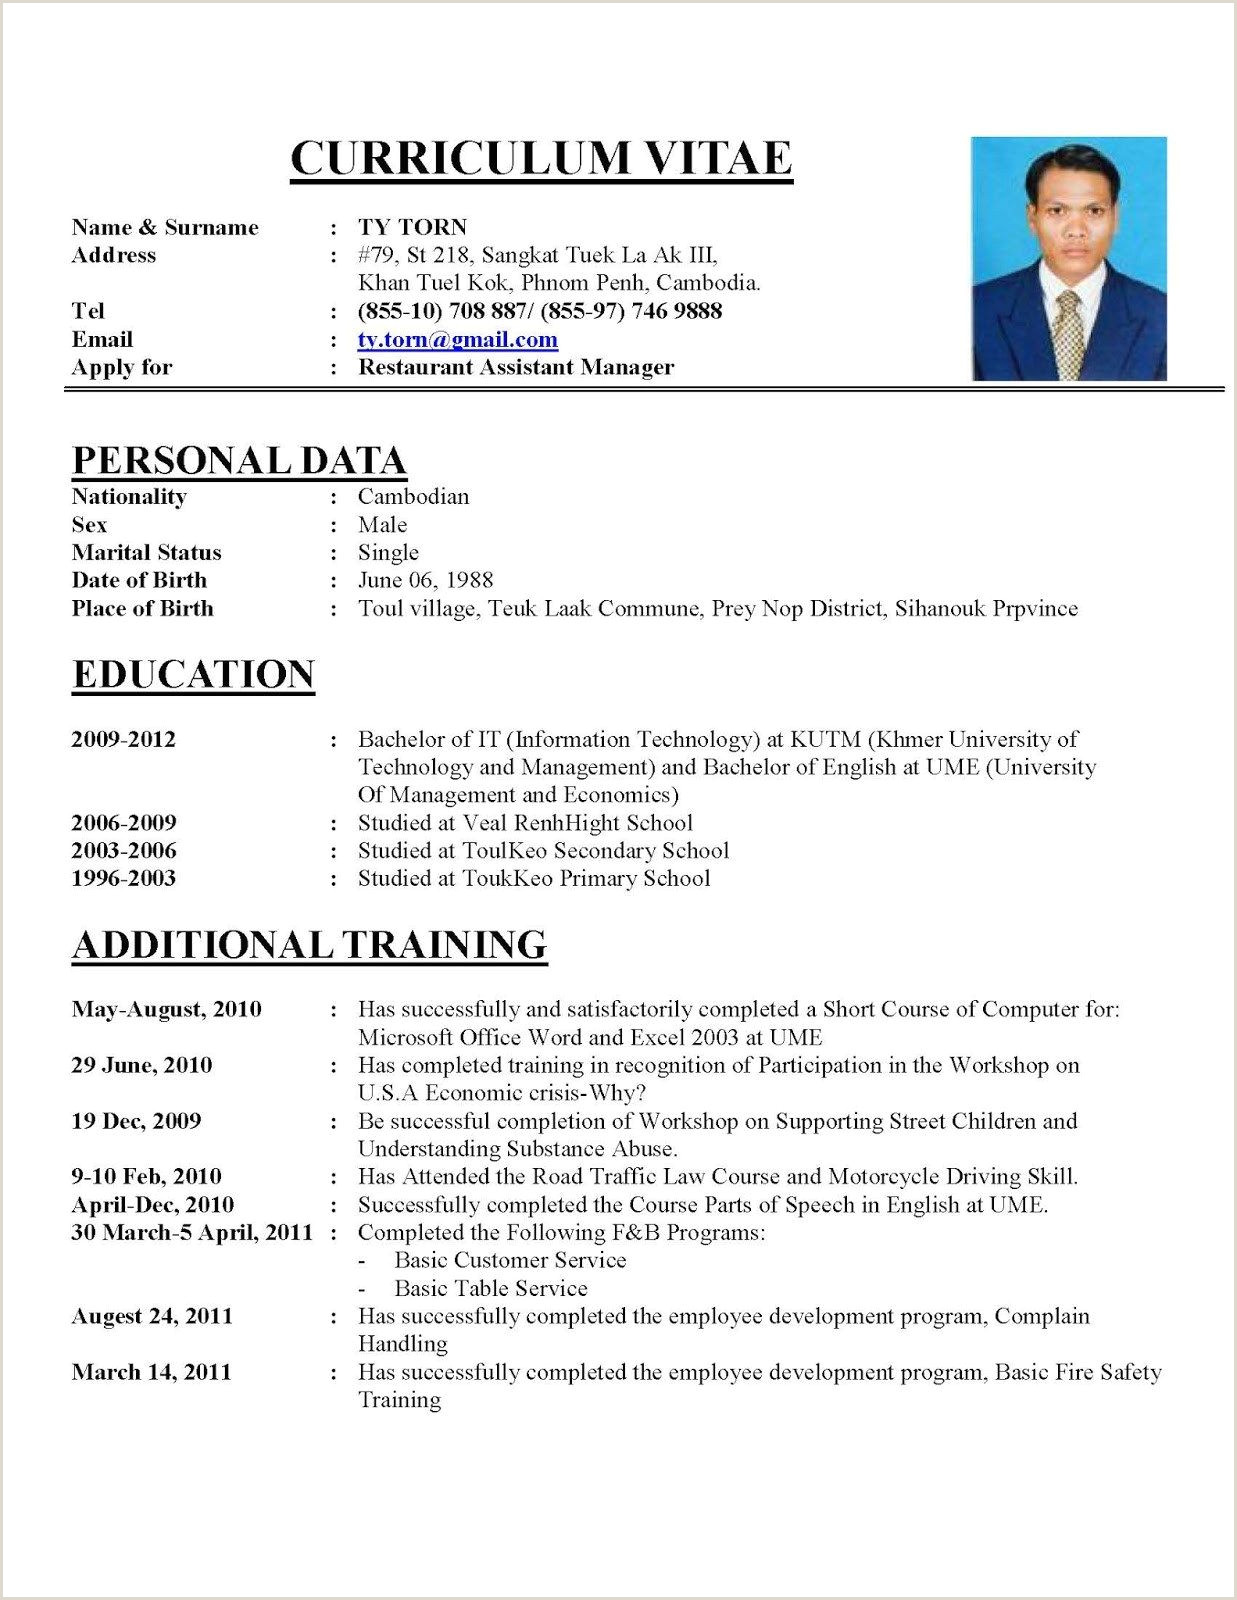 Cv Format For Job In Dubai Professional Cv Format For Dubai Tips On How To Write A